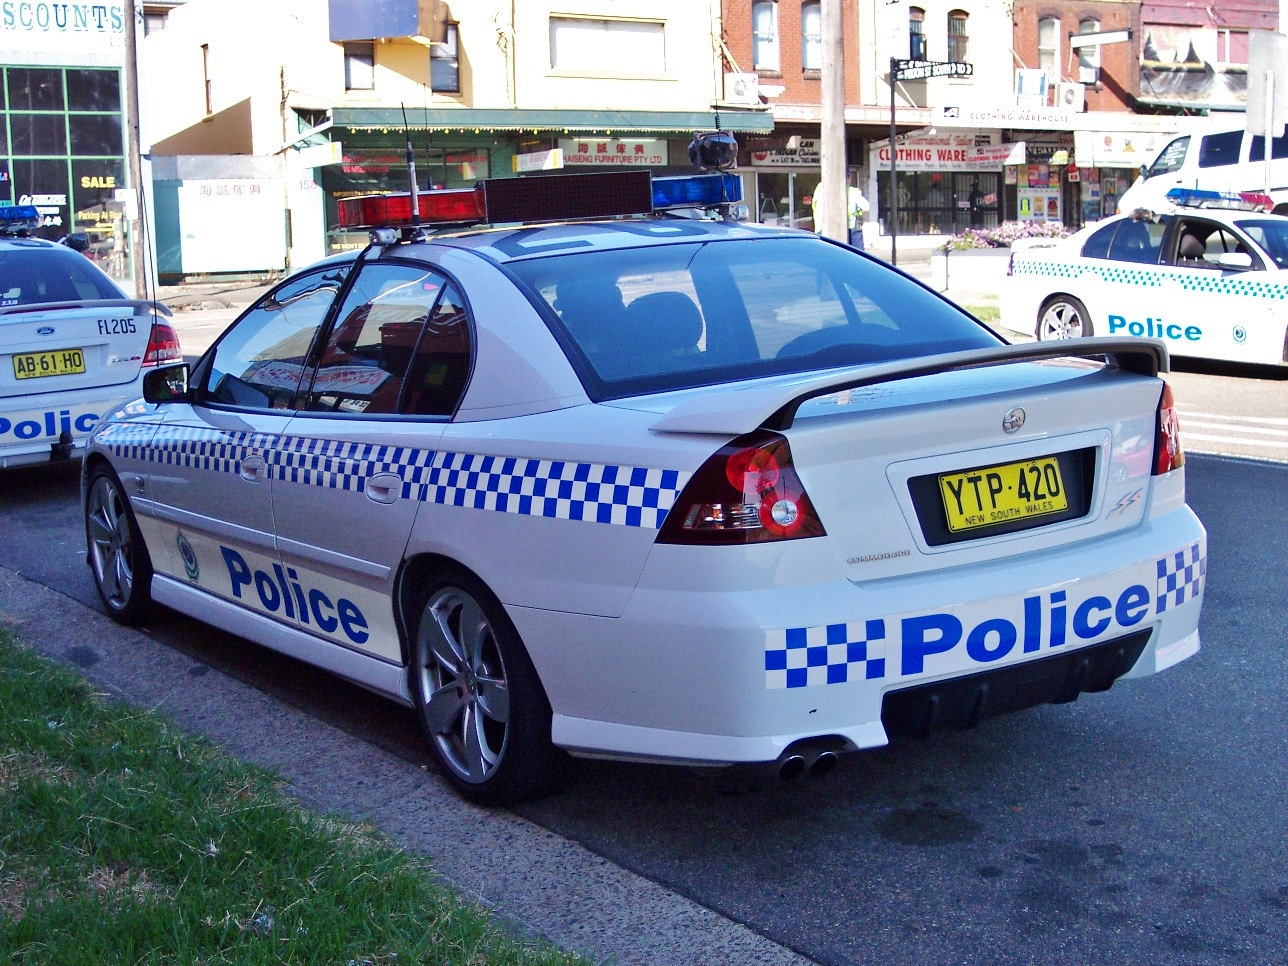 File2003 holden vy commodore ss nsw police 5498475474g file2003 holden vy commodore ss nsw police 5498475474g vanachro Images